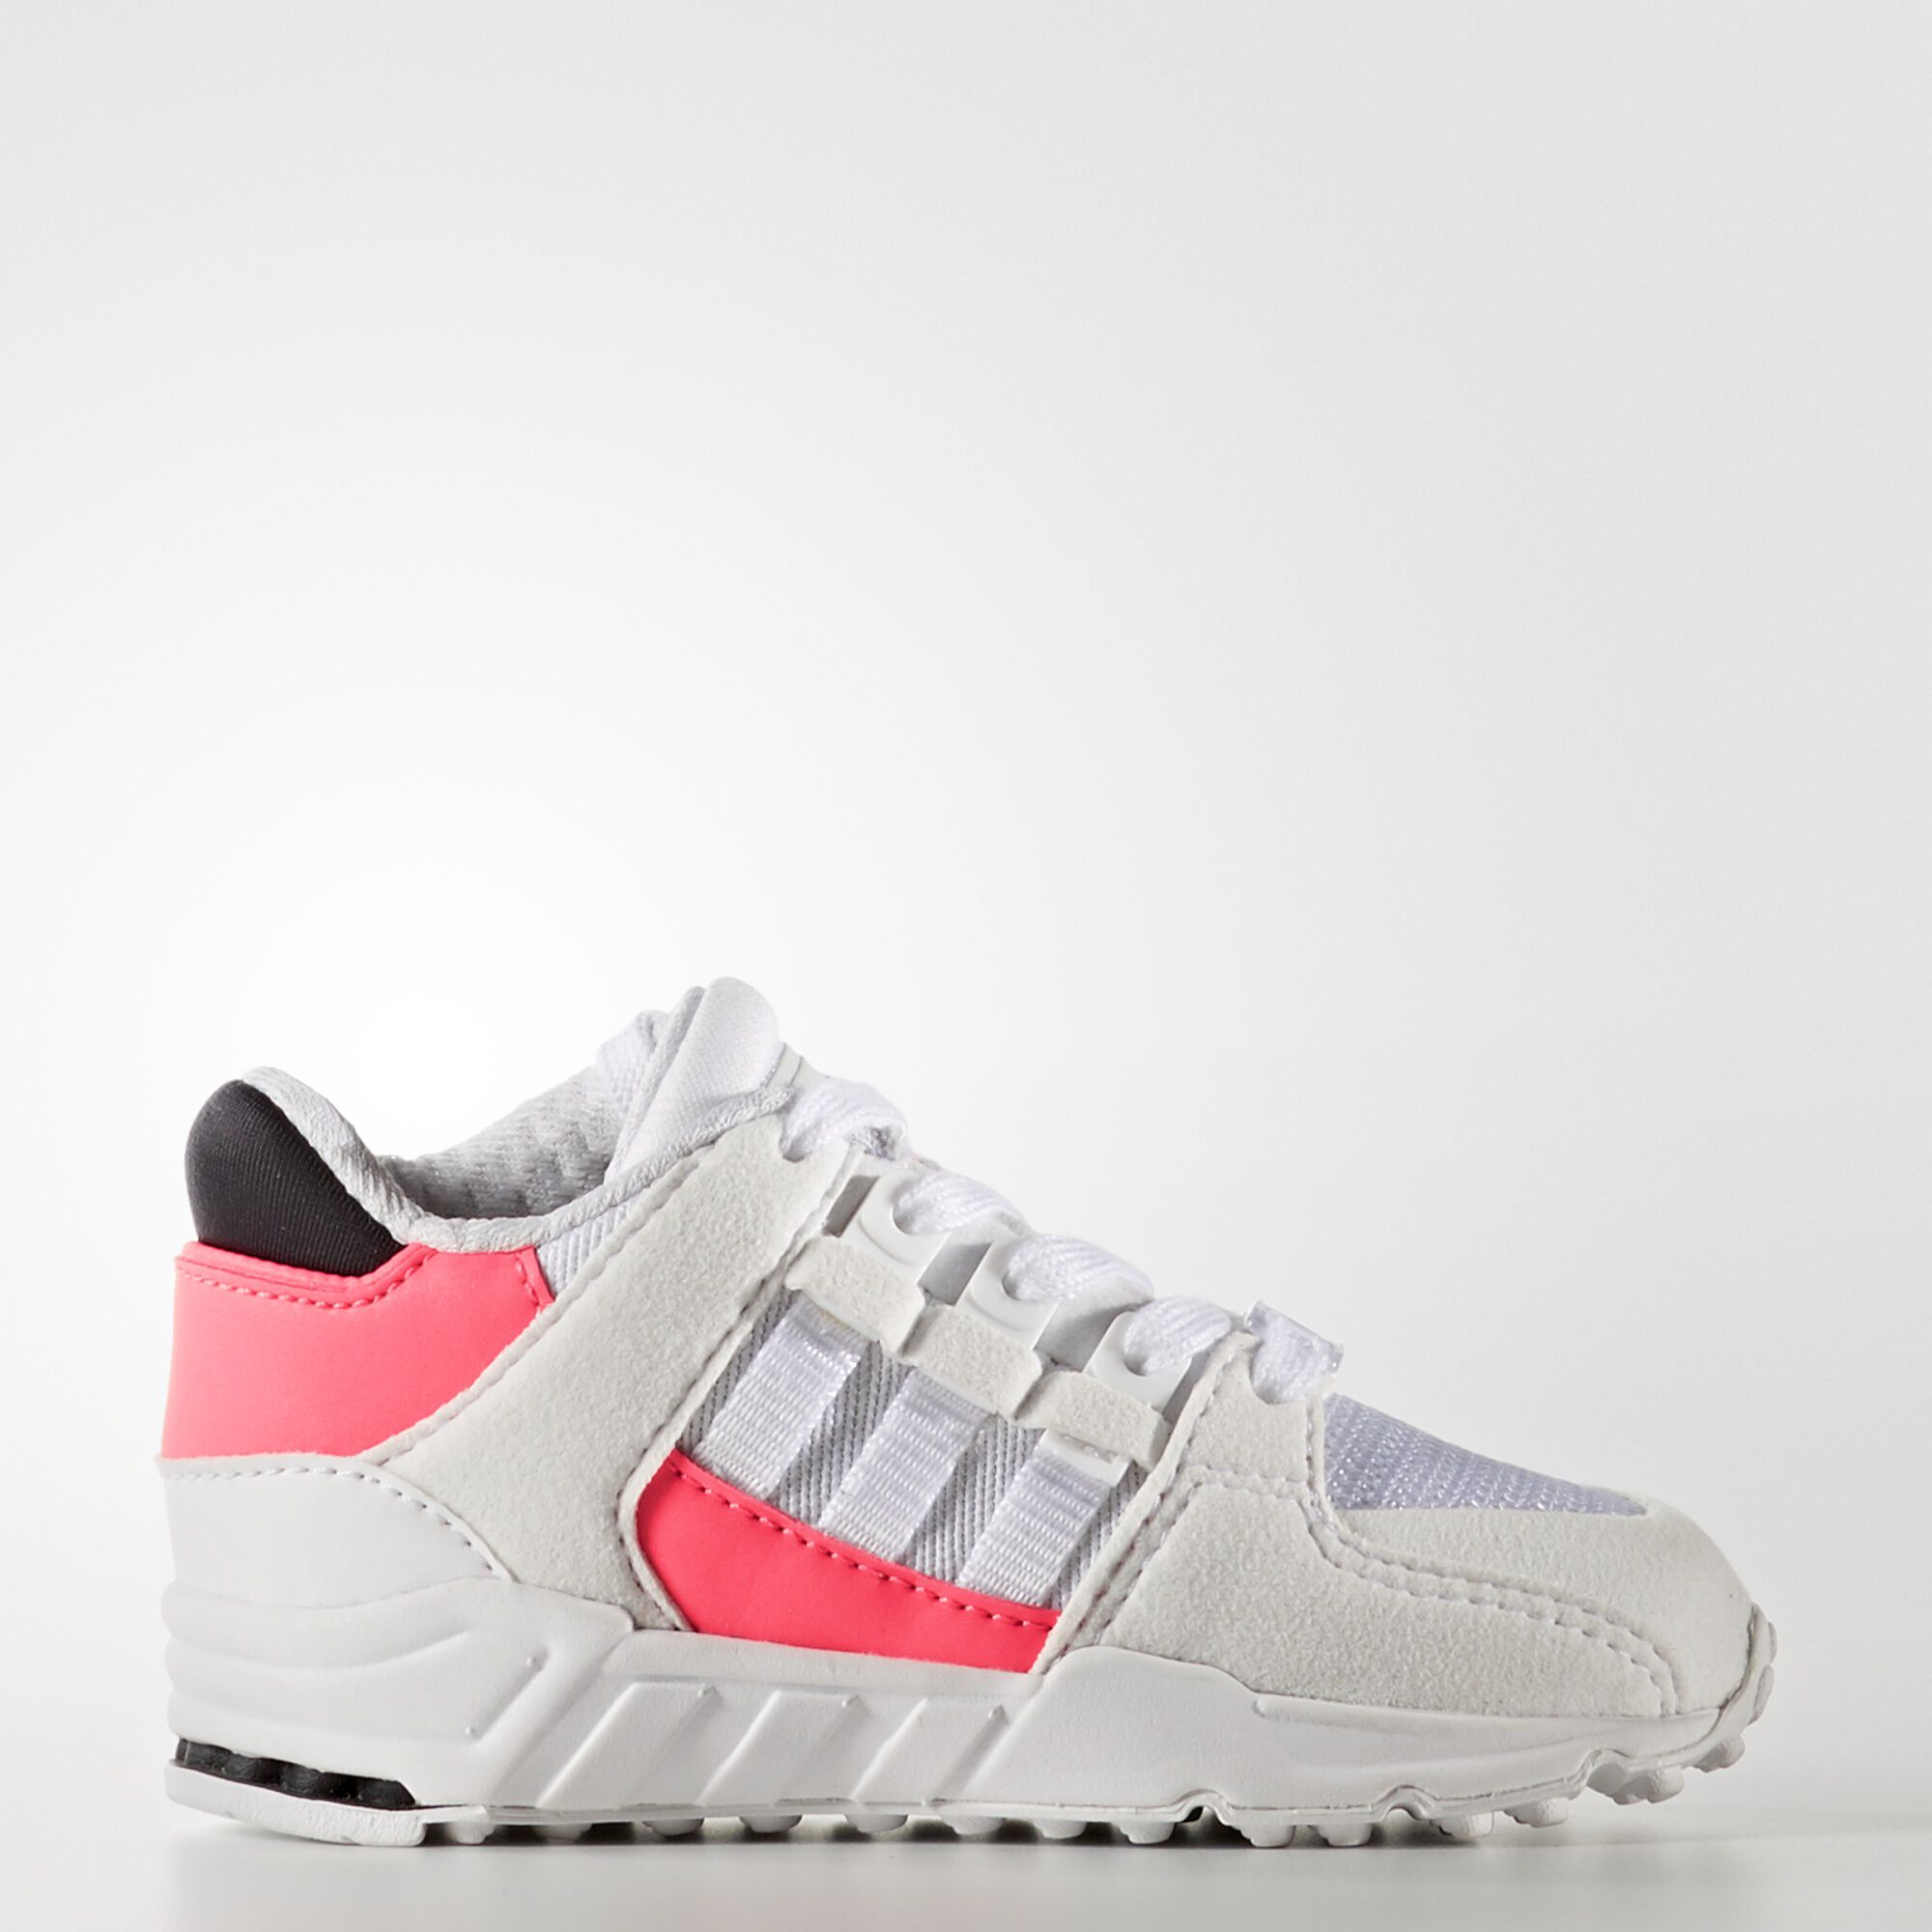 huge selection of 051e6 5556f ... promo code for adidas eqt kids shoes brown orange 02b5f 49f92 ...